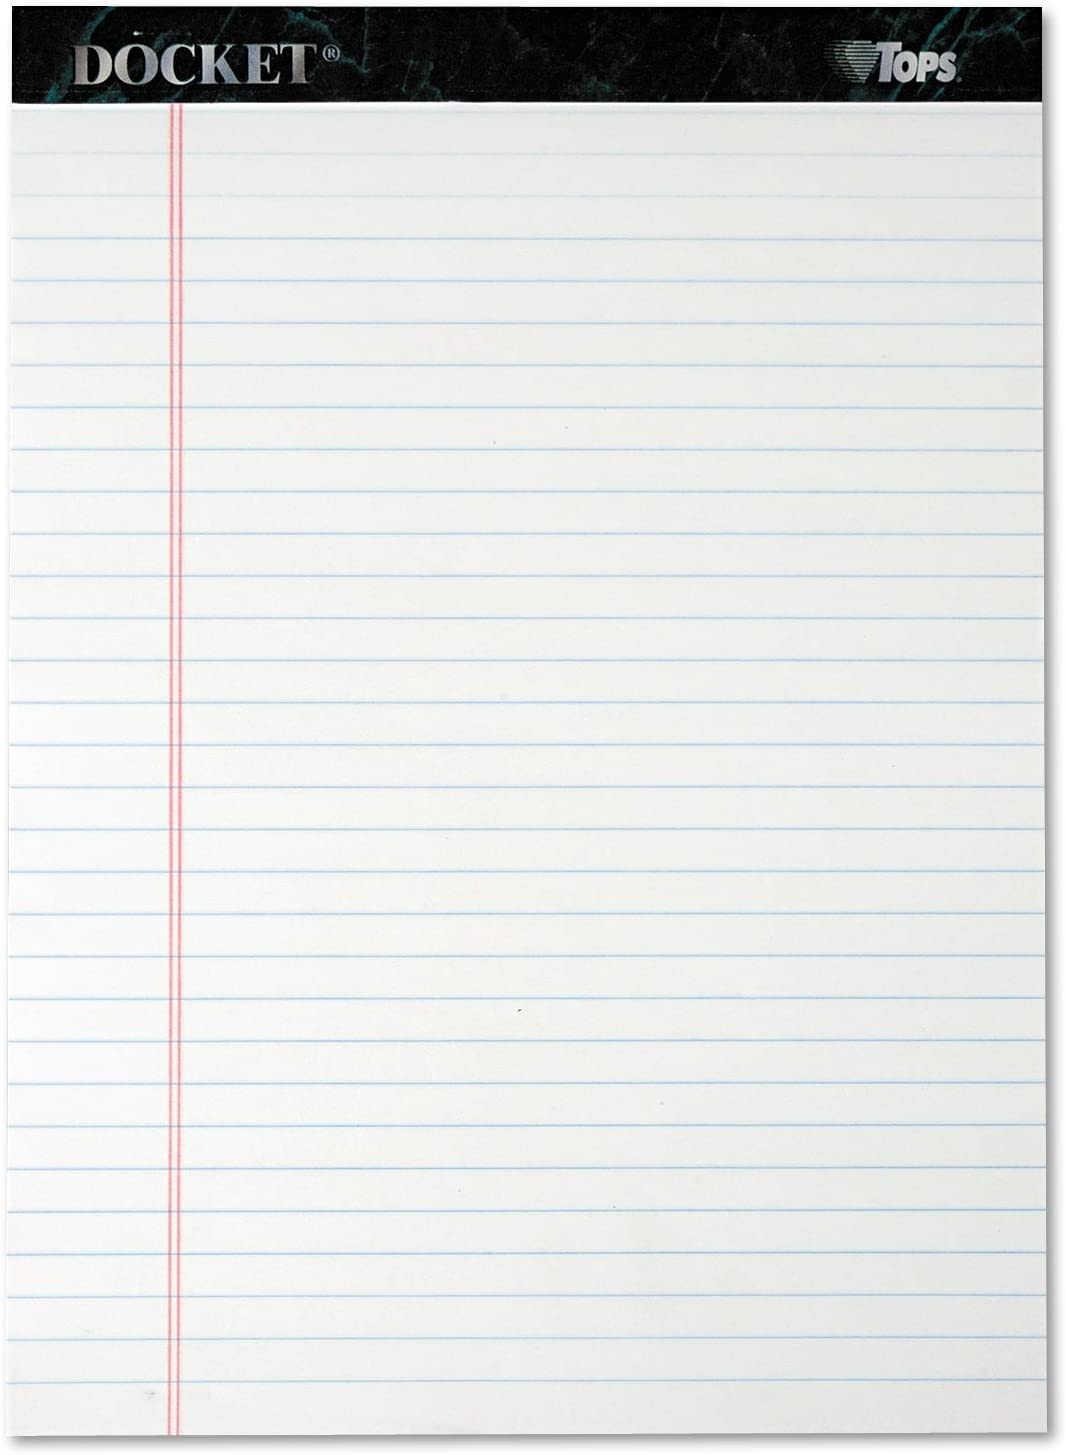 TOP63410 - Tops Docket Ruled Perforated Pads